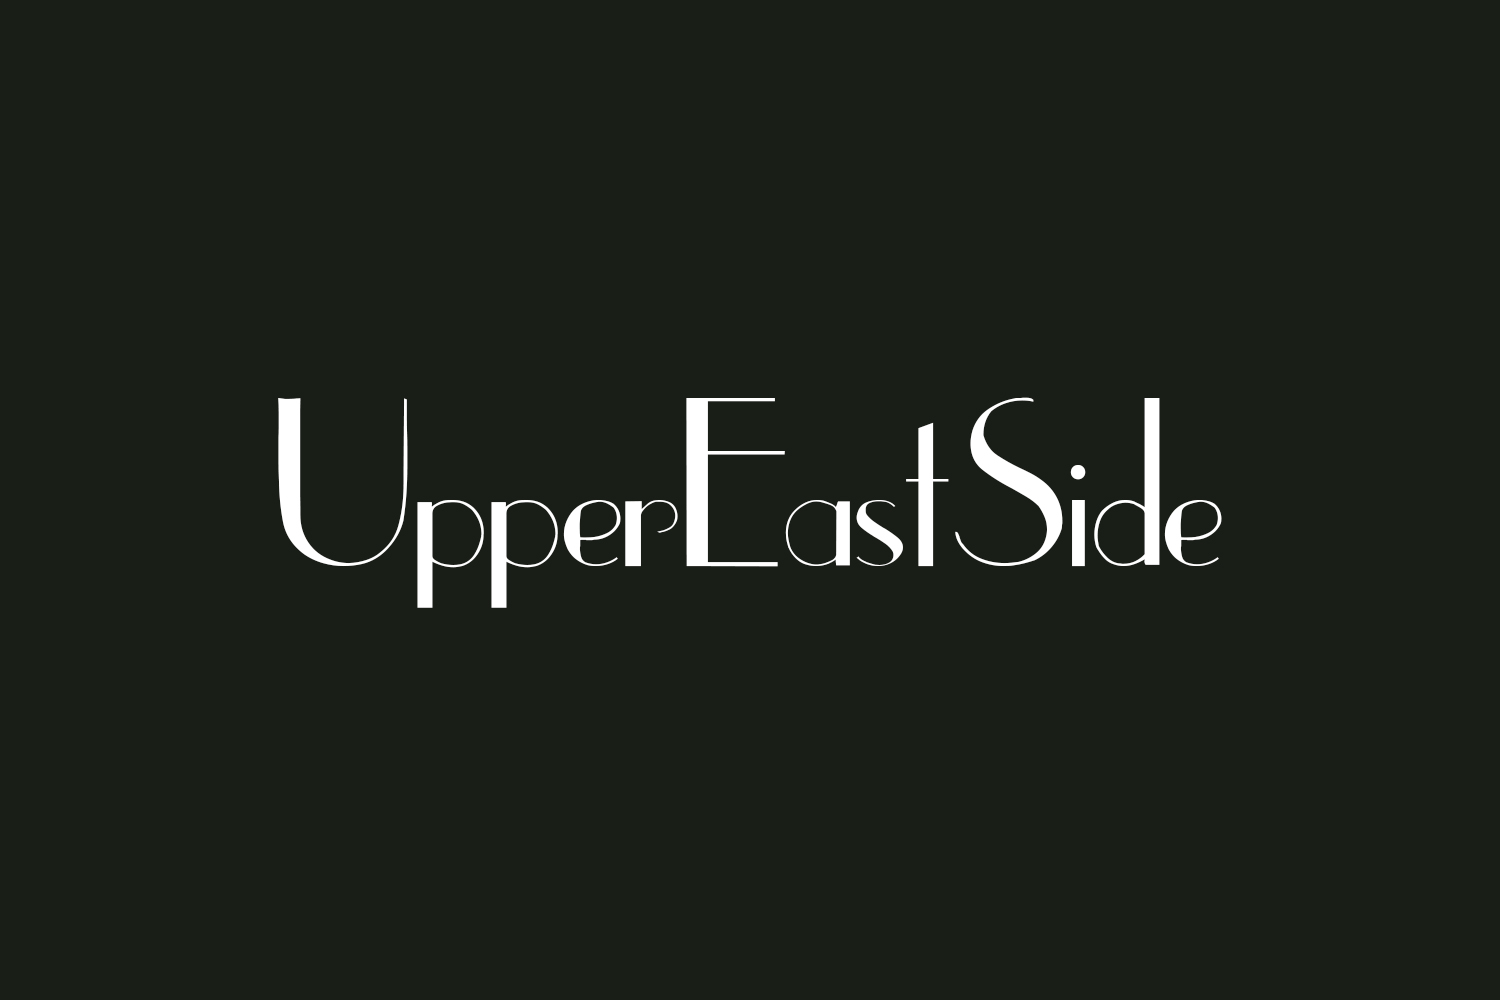 UpperEastSide